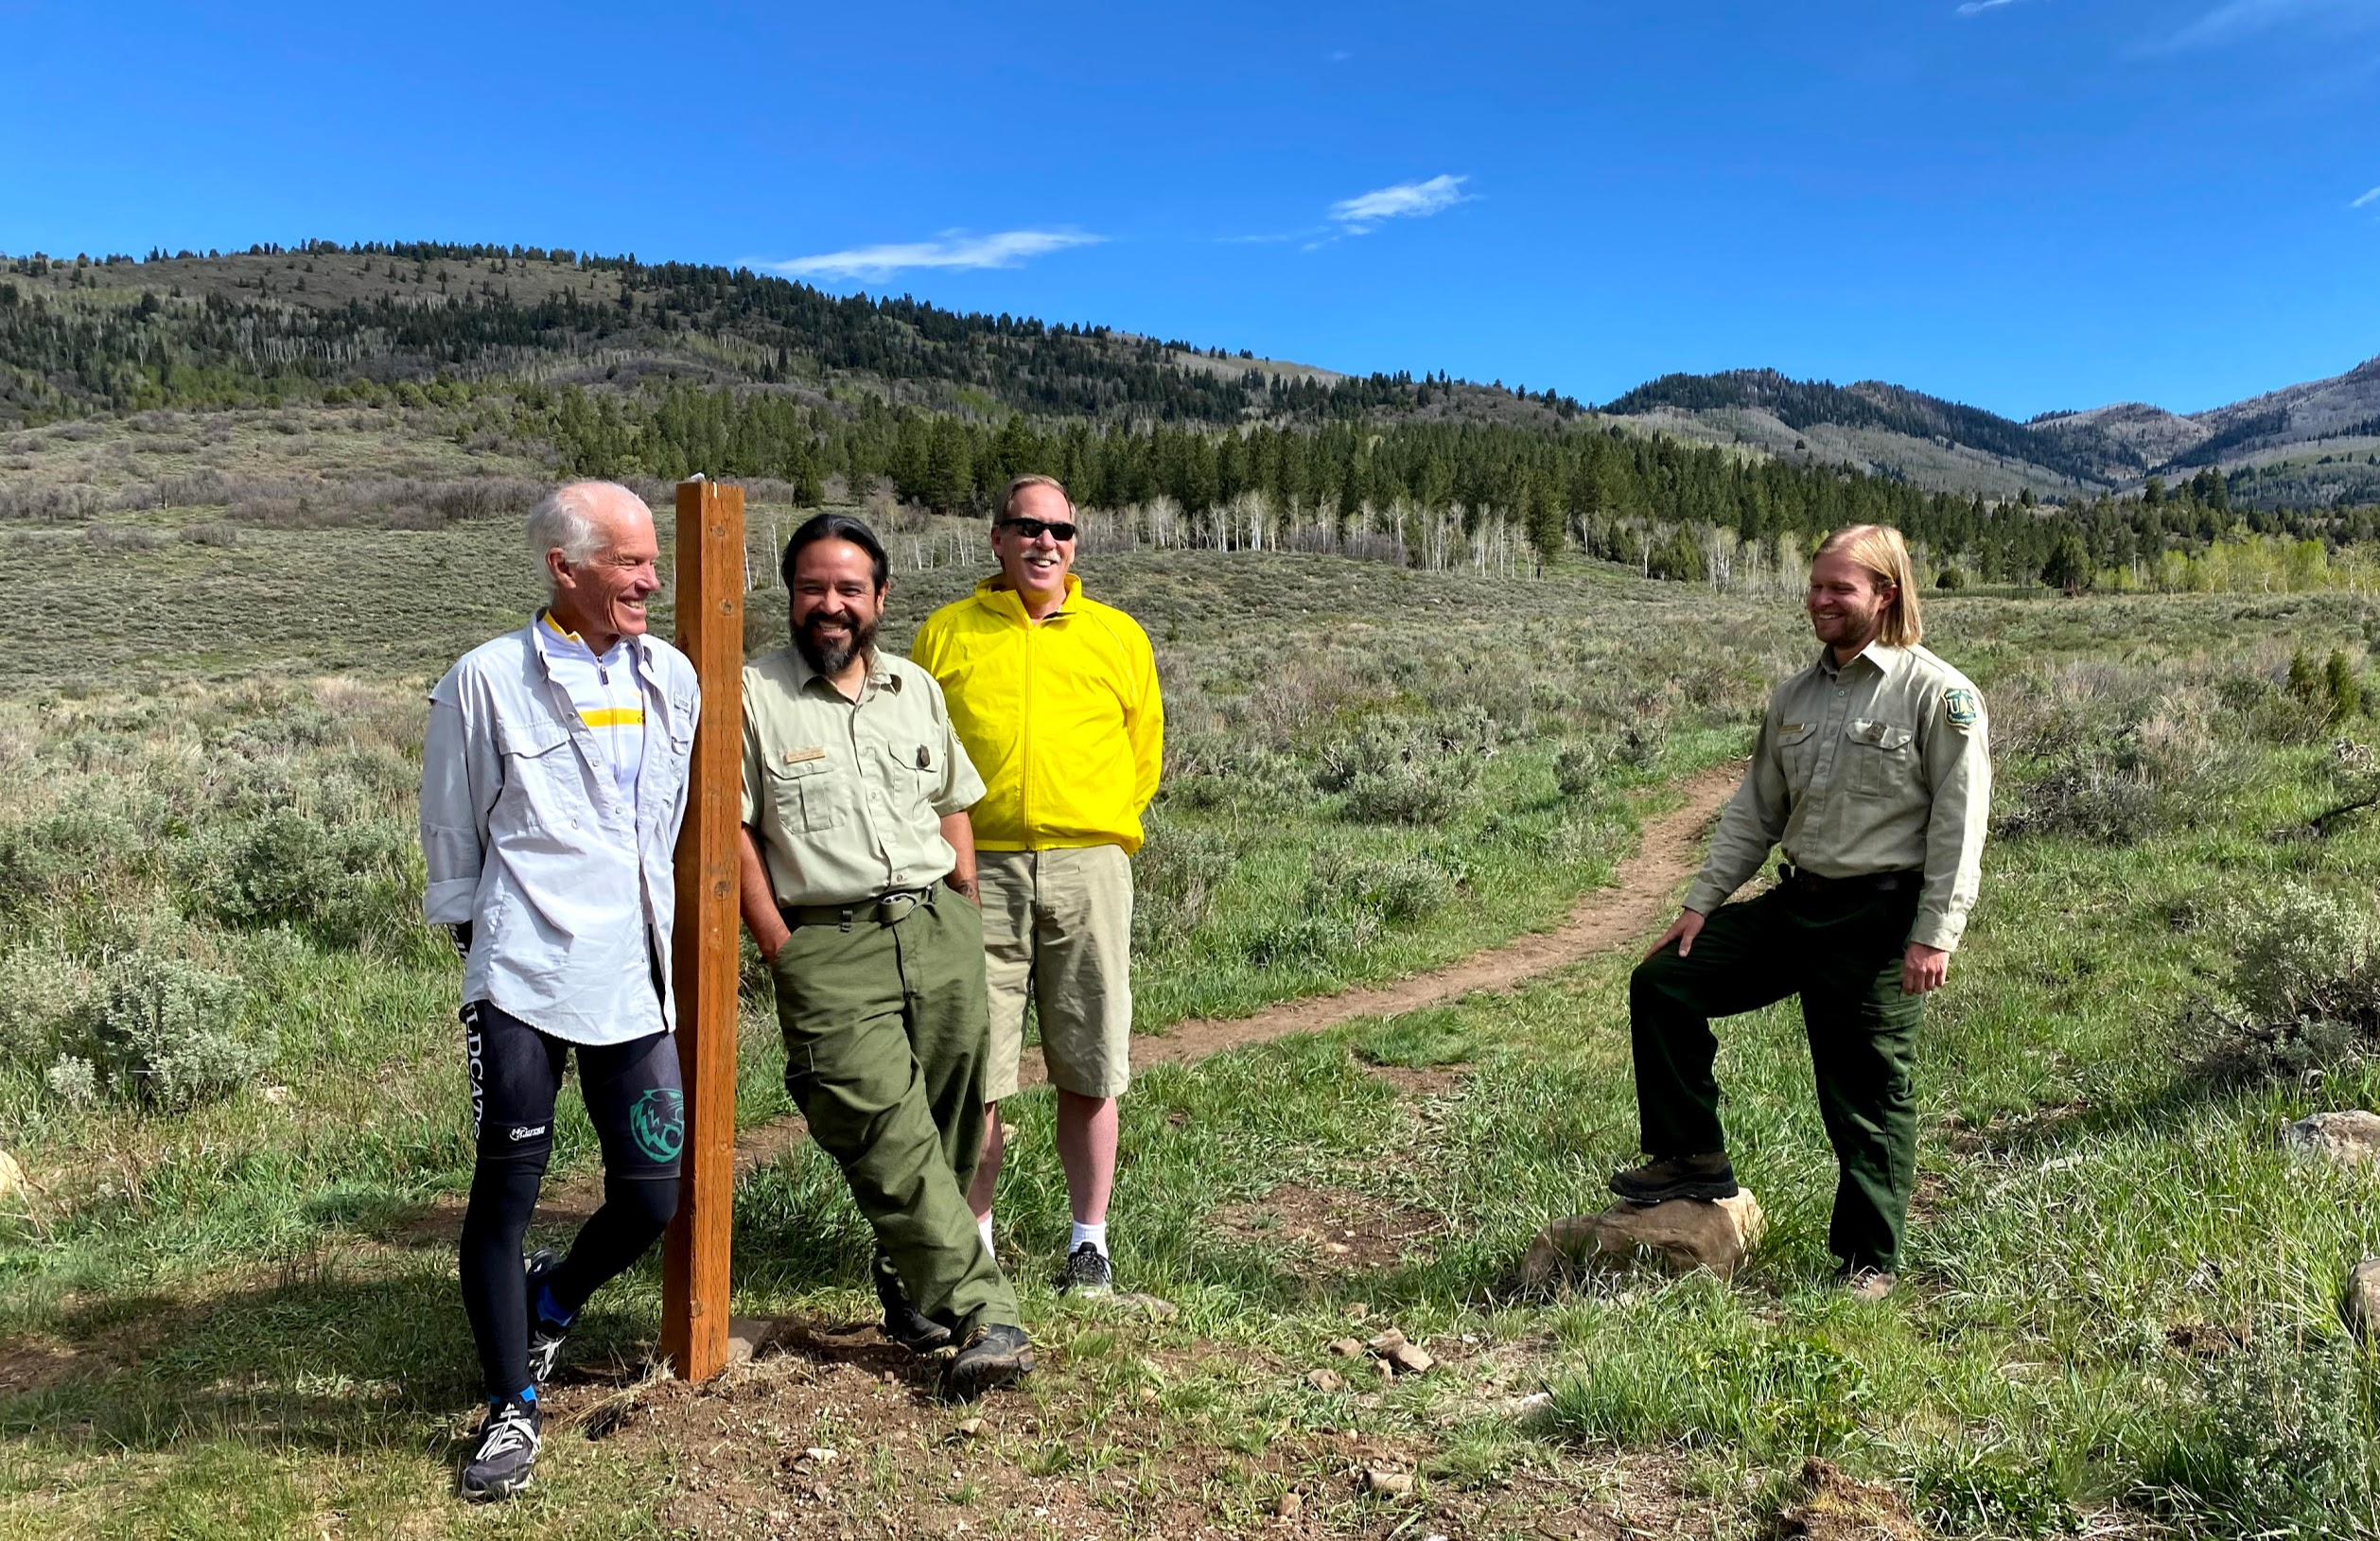 Tom Noaker, left, and Les England, in the yellow shirt, of the South Summit Trails Foundation, stand at the entrance to the new Slate Creek Mountain Bike Trail with Daniel Jauregui, leaning against the pole, and Brent Freeman of the U.S. Forest Service. The public-private collaboration between the two entities created what is believed to be the first mountain bike-specific trail constructed on national forest terrain in Utah.